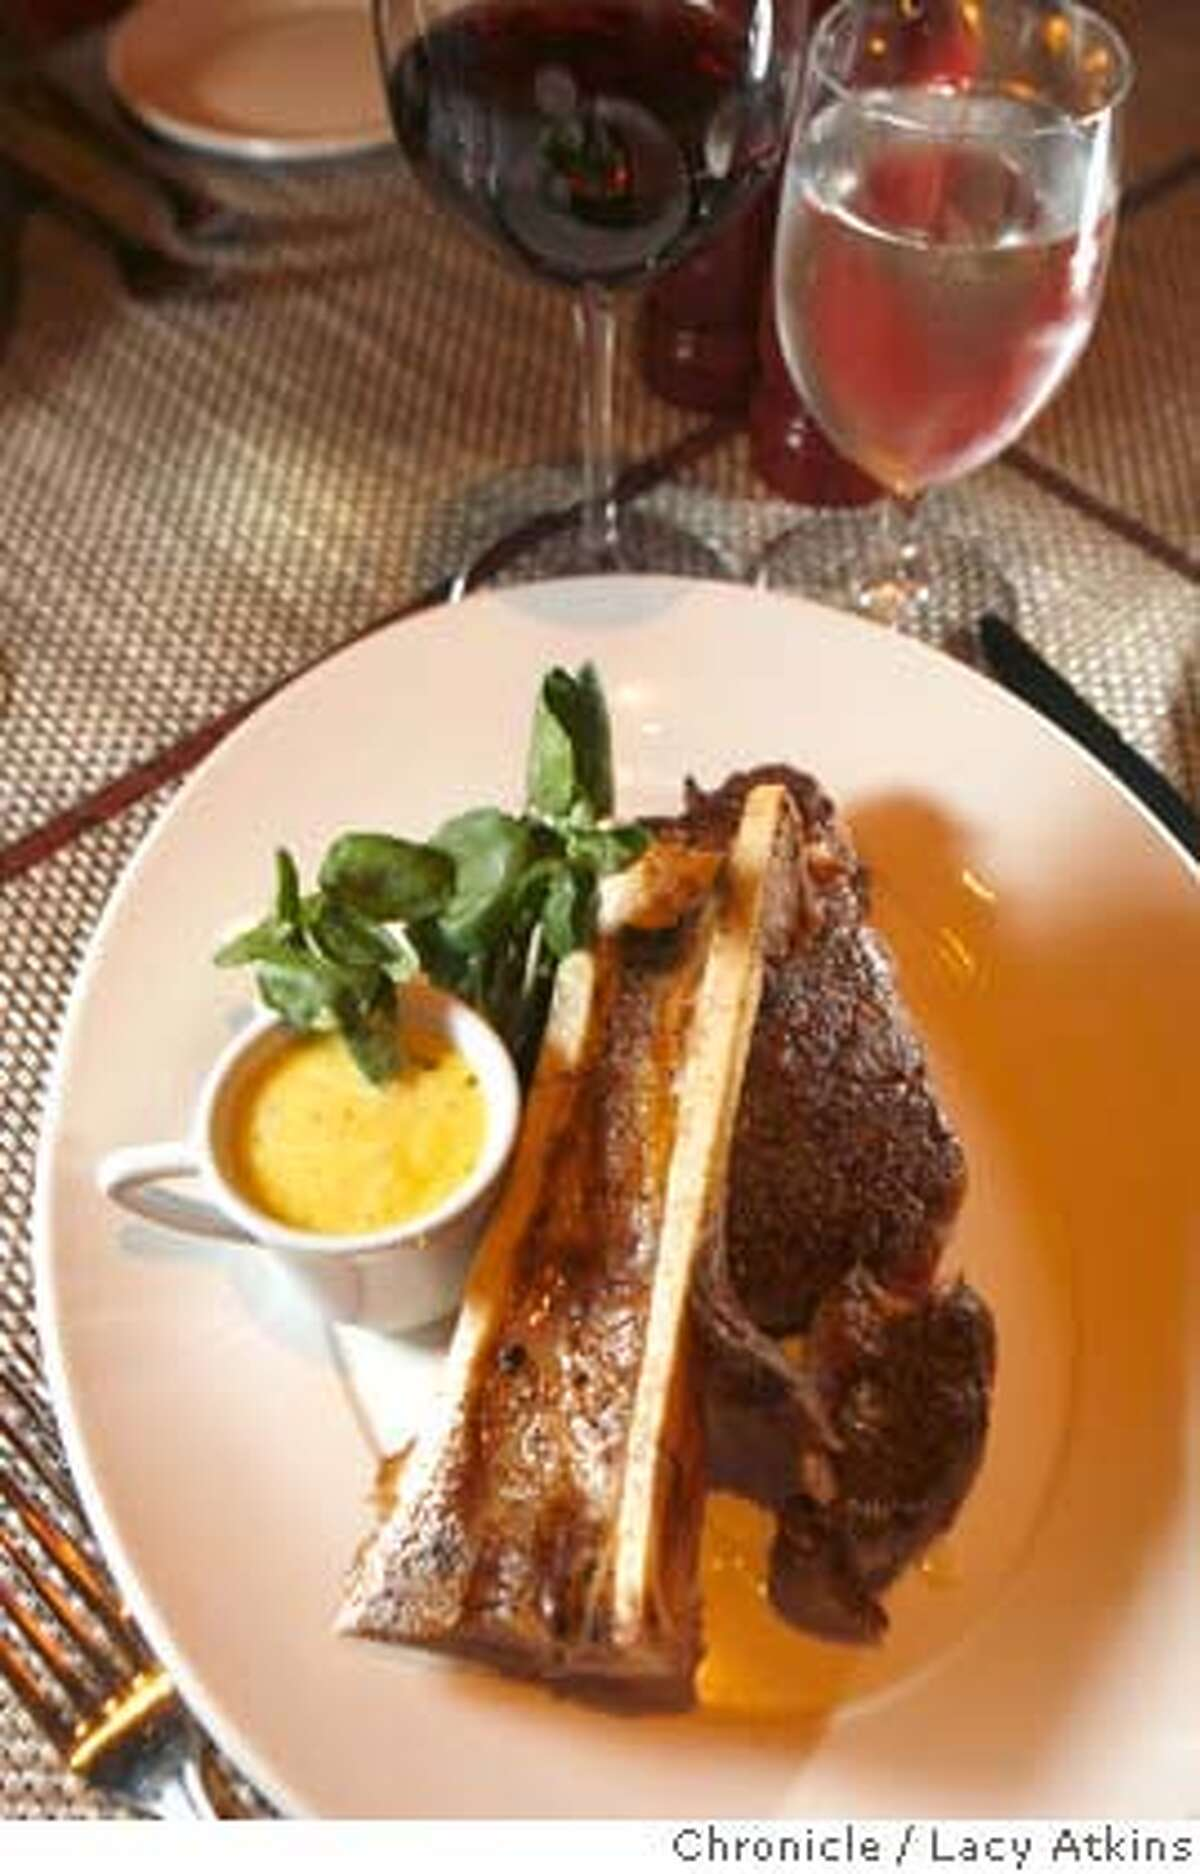 Stark's Steakhouse features a 16 ounce rib eye with bone marrow on top on, Wednesday April 2, 2008, in Santa Rosa, Calif. Photo by Lacy Atkins / San Francisco Chronicle